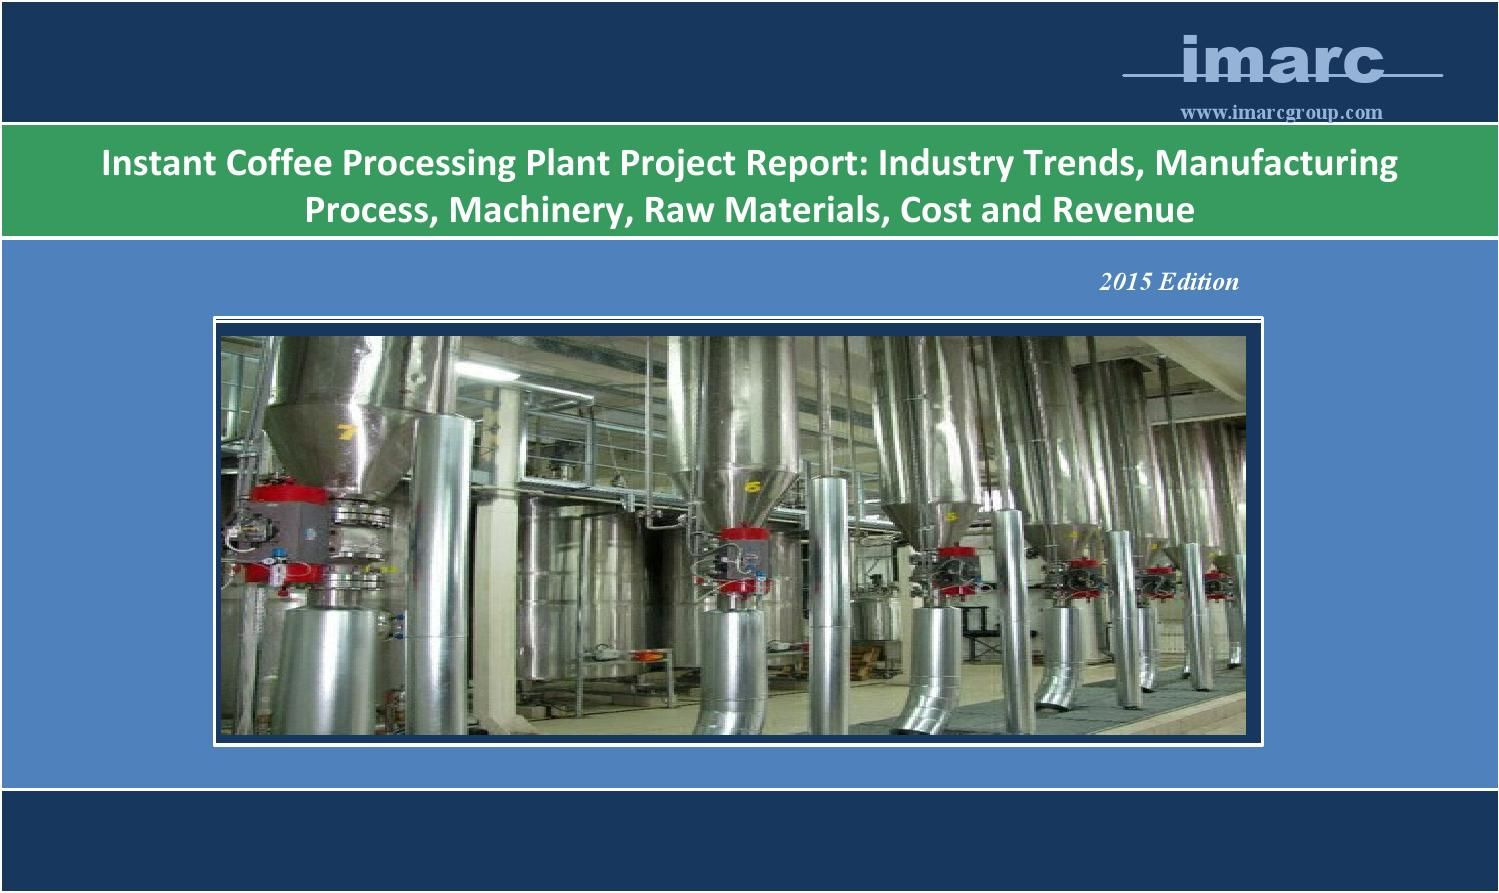 Instant Coffee Processing Plant Market Trends, Cost